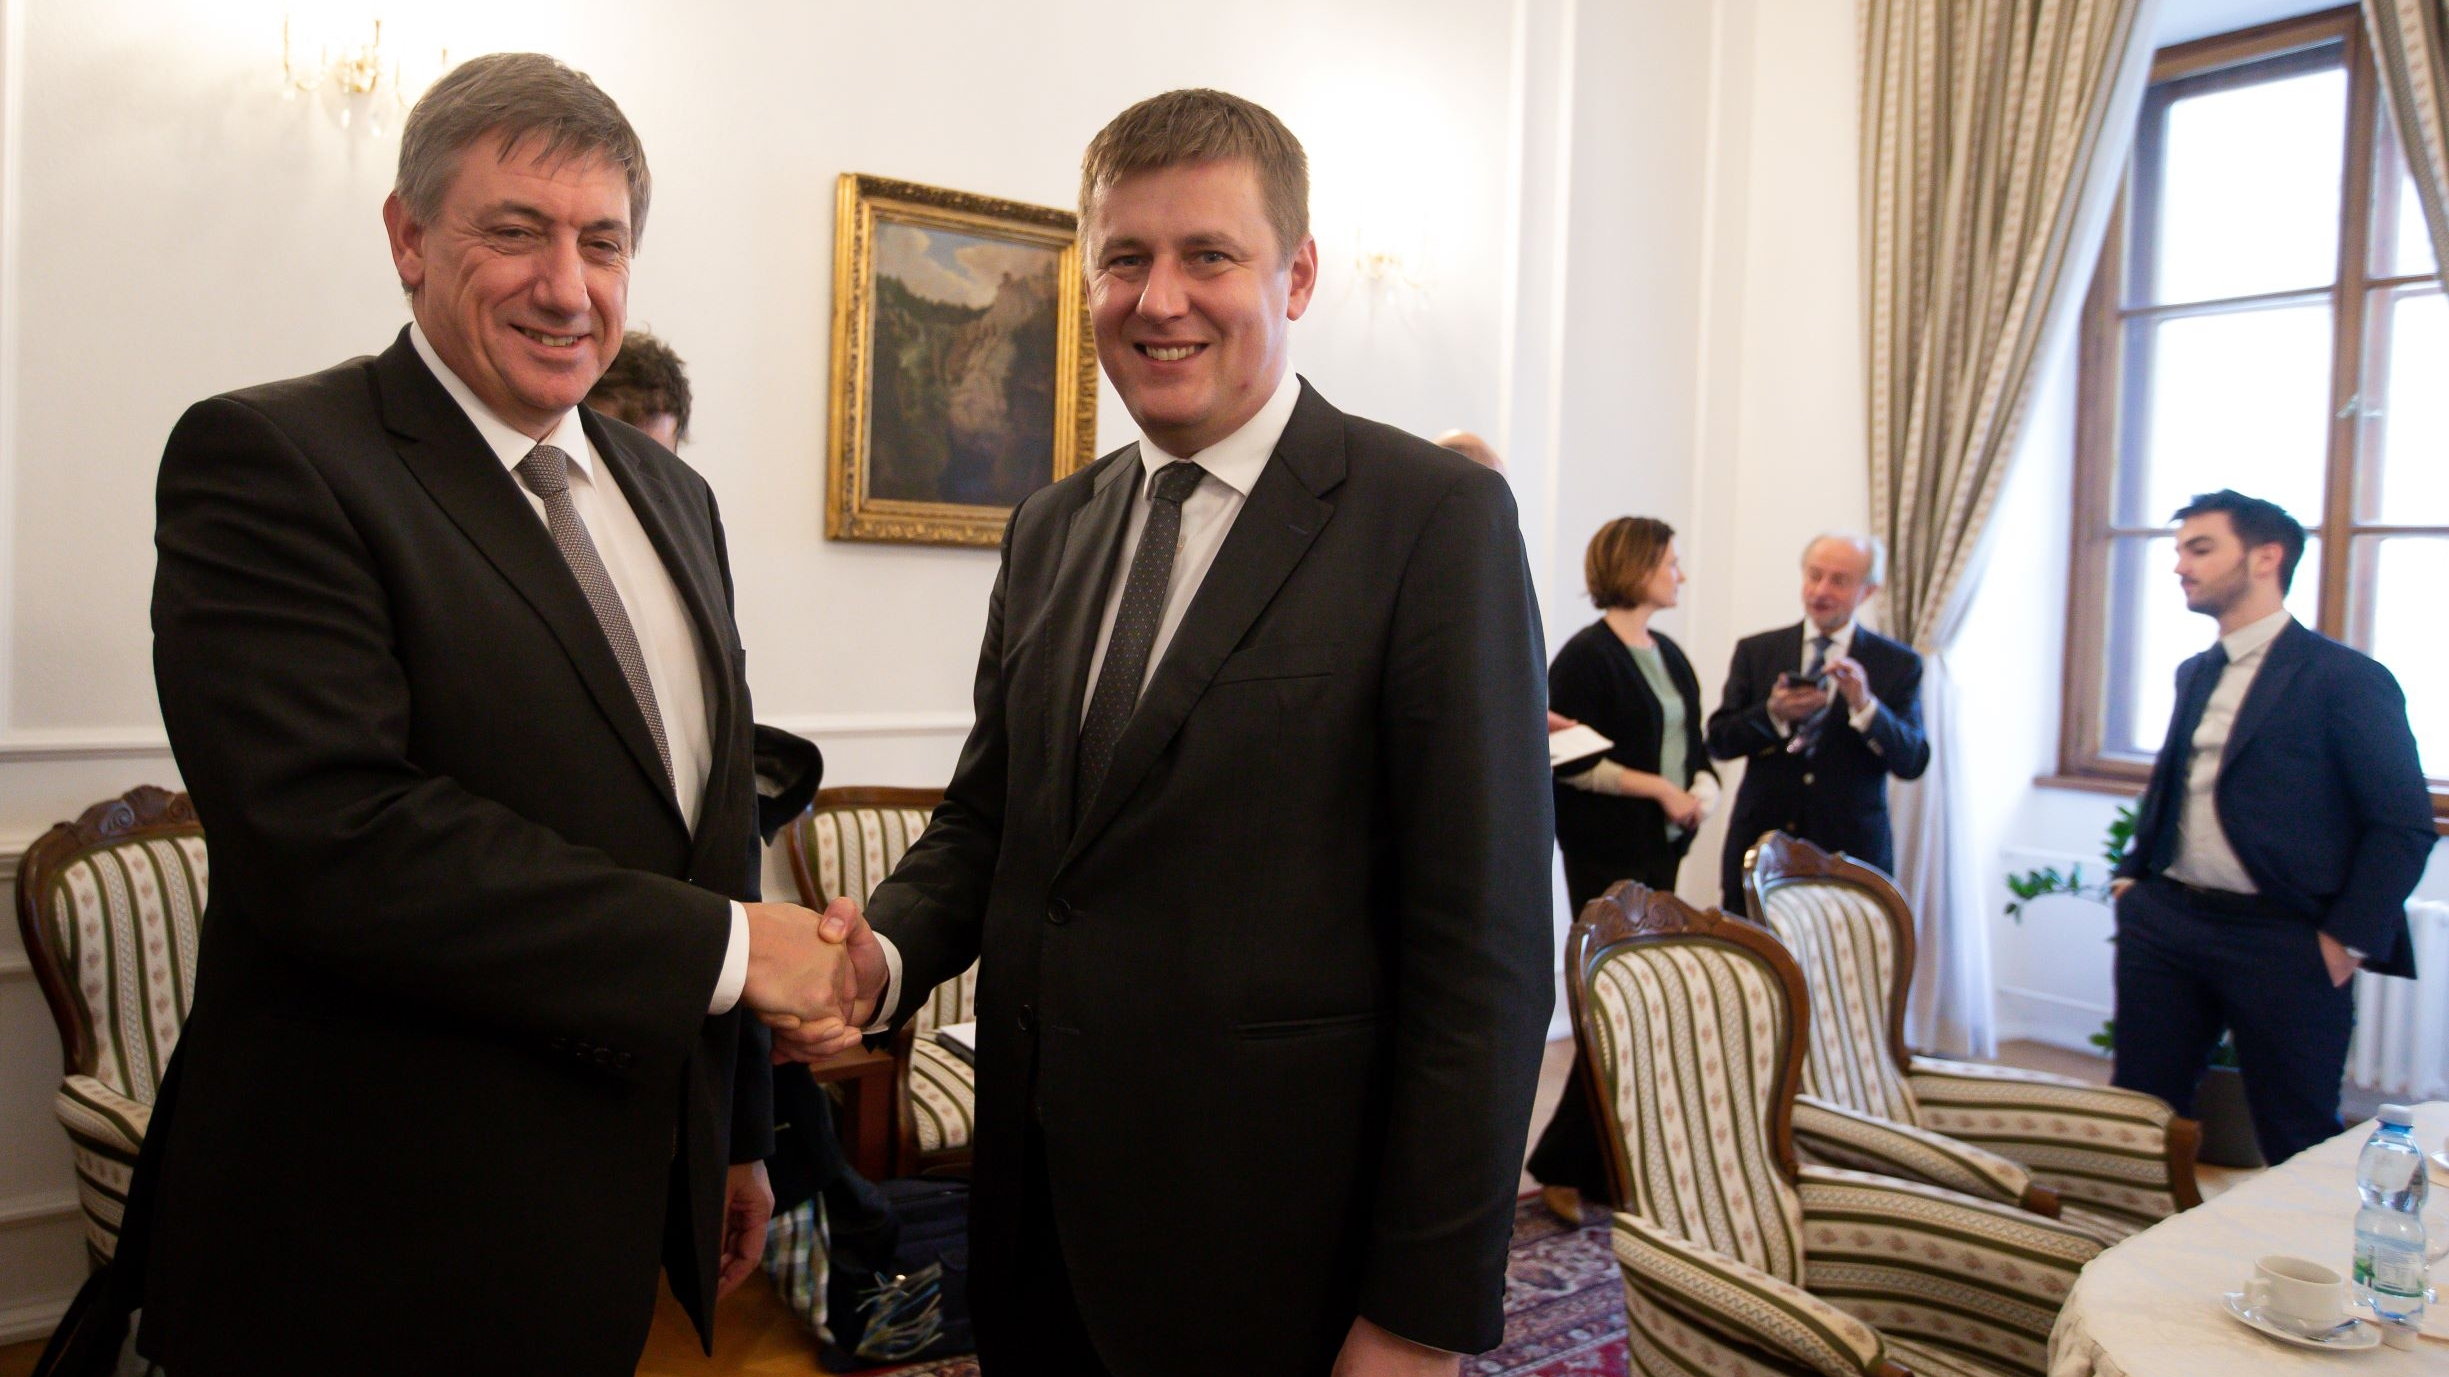 Minister-president Jambon and Czech Minister  of Foreign Affairs  Petricek